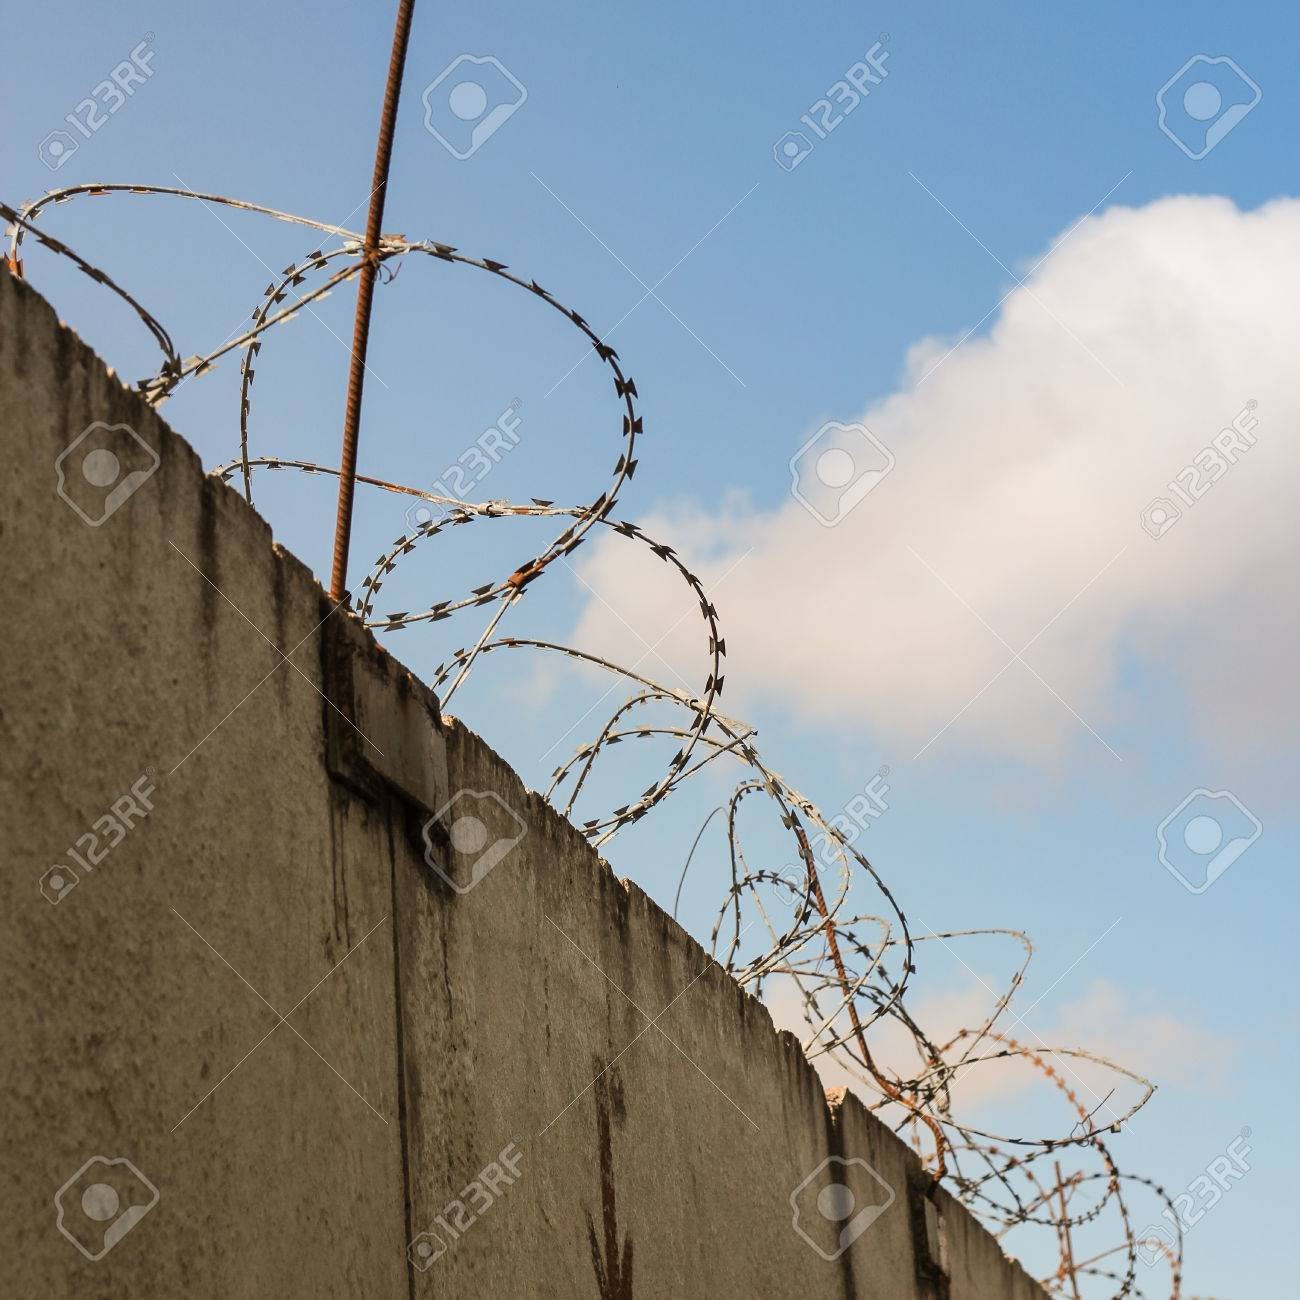 Barbed Wire Wound On The Fence Of Concrete Slabs Stock Photo ...